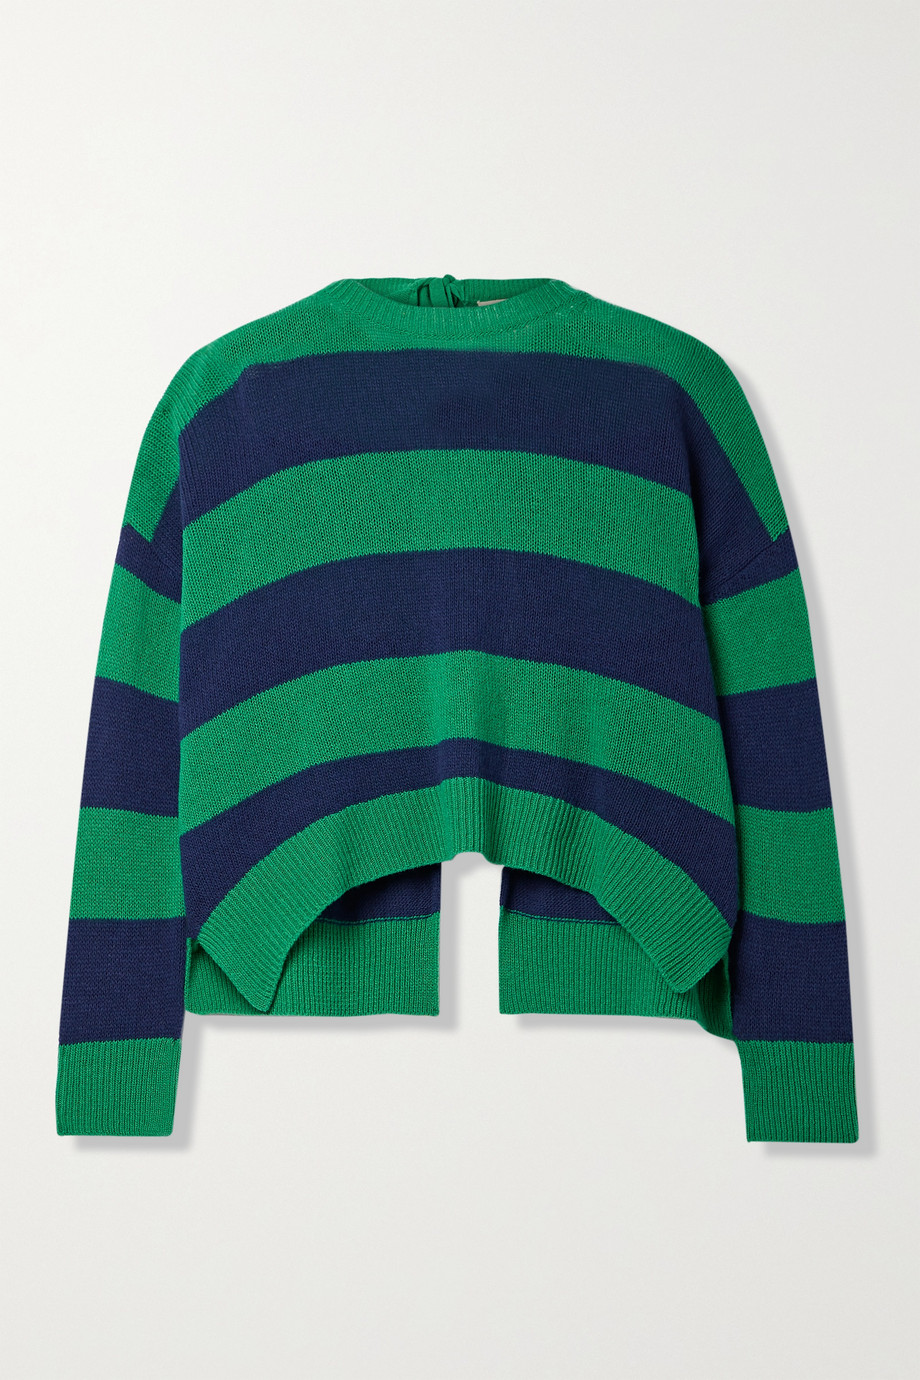 Marni Open-back striped wool and cashmere-blend sweater